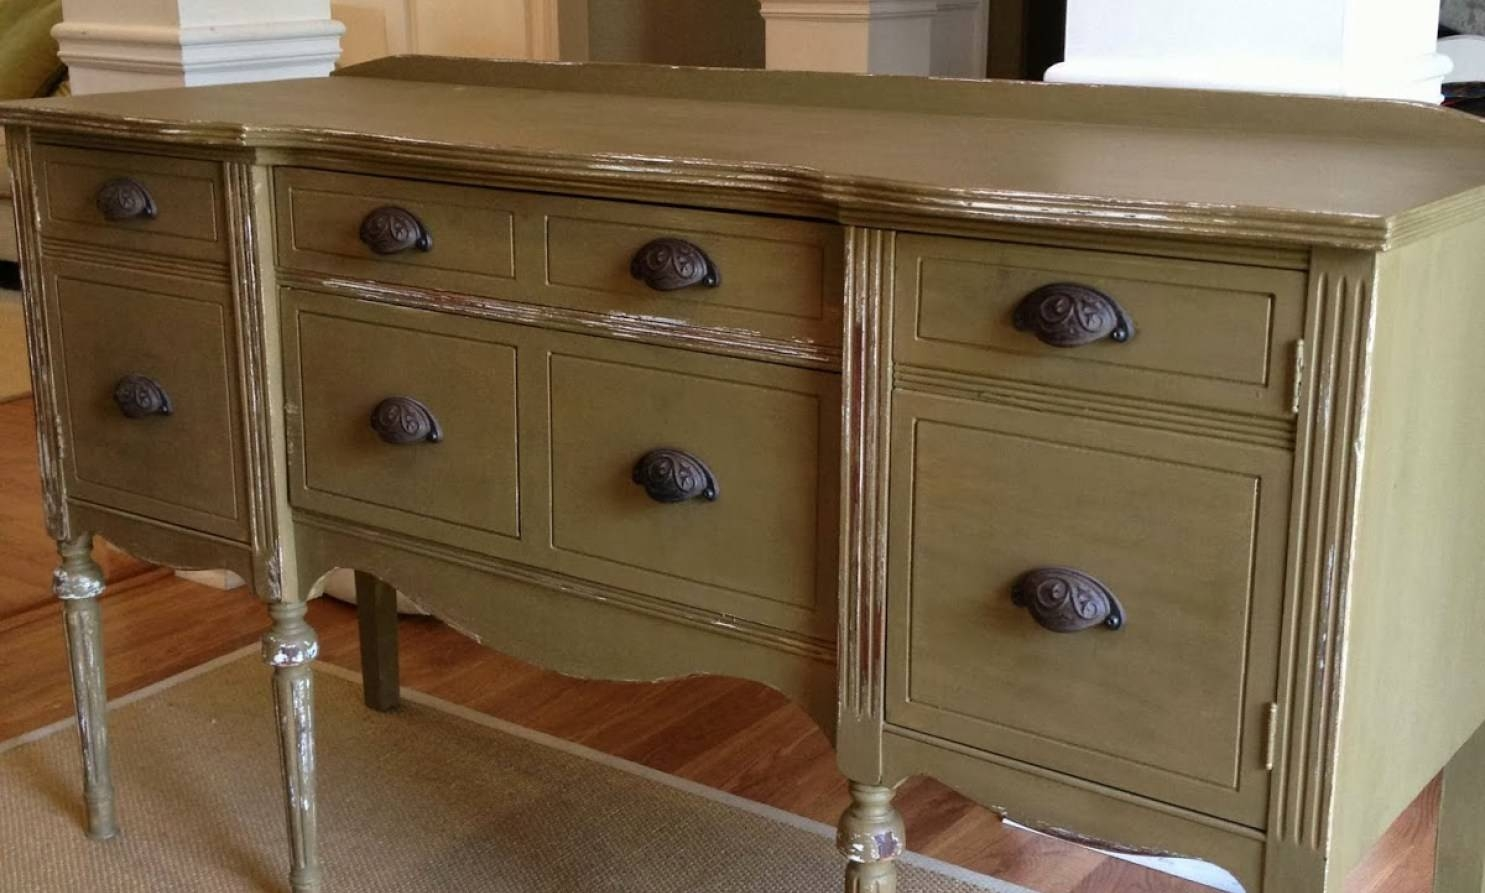 Sideboard : Antique Sideboards And Buffets Inspirational Of in Antique Sideboards And Buffets (Image 12 of 15)